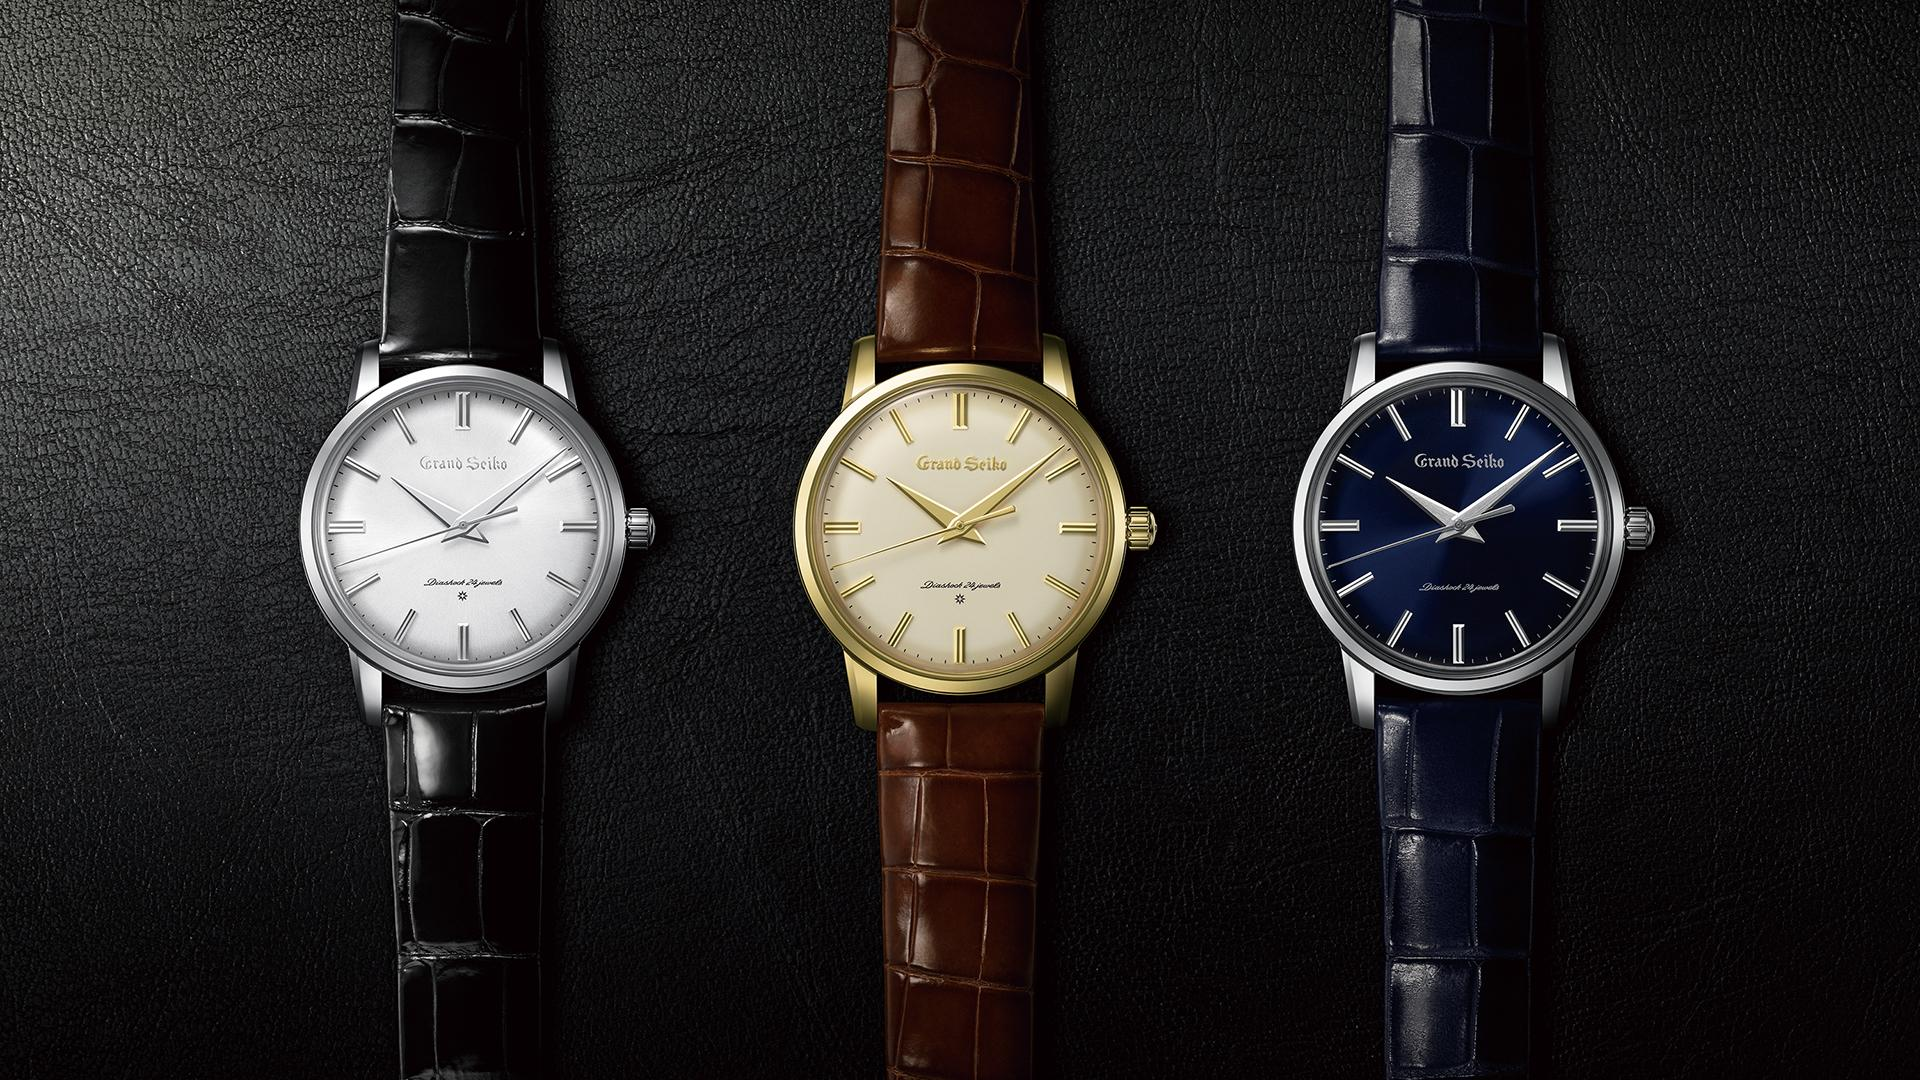 Grand Seiko Re-Creations Of The First Grand Seiko watch collection